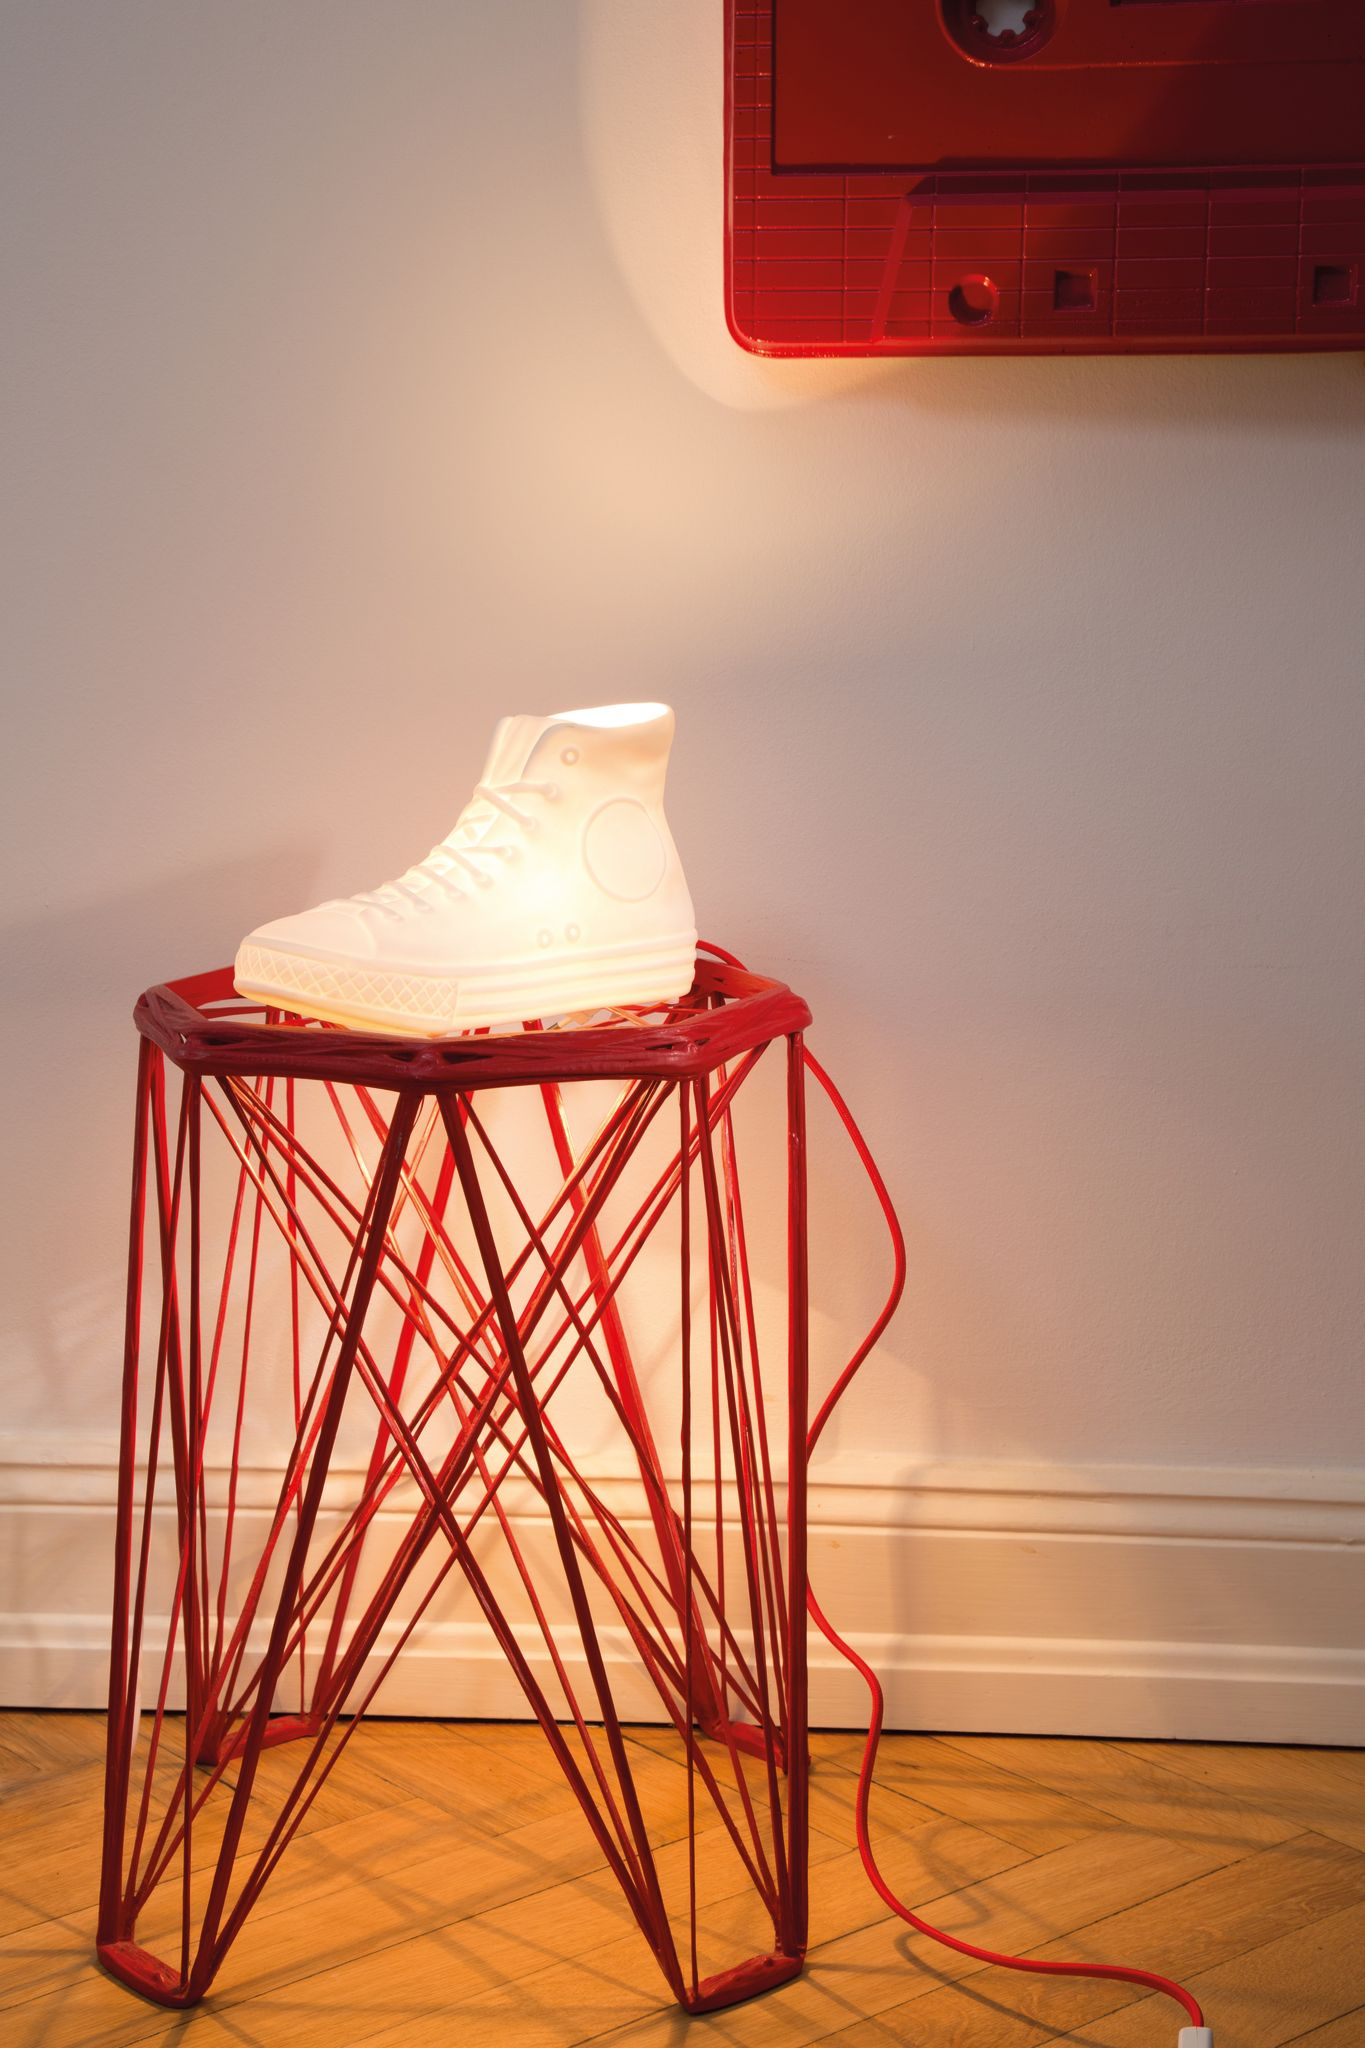 Desk Lamp - NYC LUX (330101)